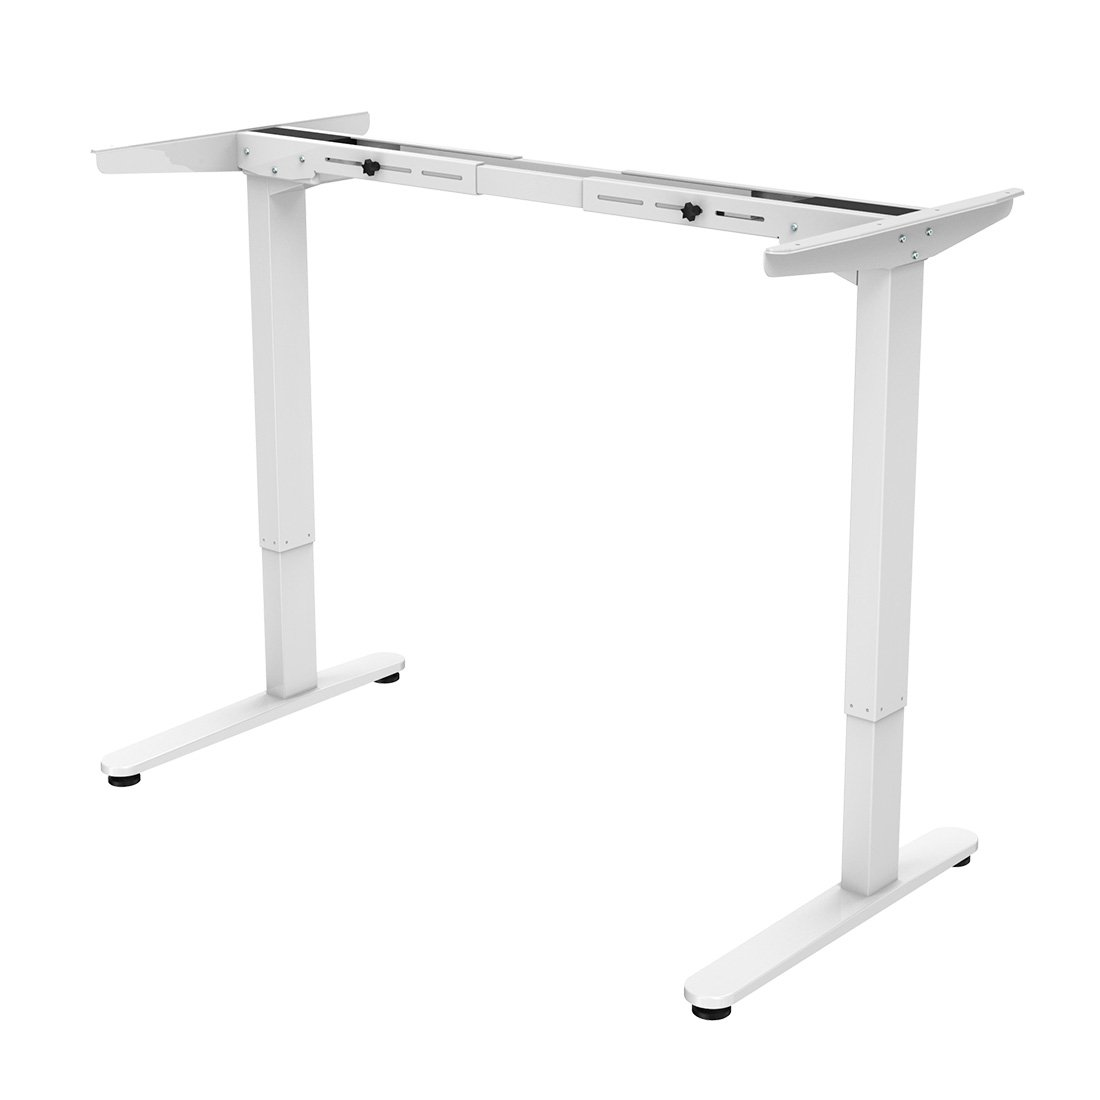 "FlexiSpot 48"" Electric Height Adjustable Standing Desk Frame Only Ergonomic Solid Steel Dual Motor Sit Stand Desk W/ 7-Button, White"